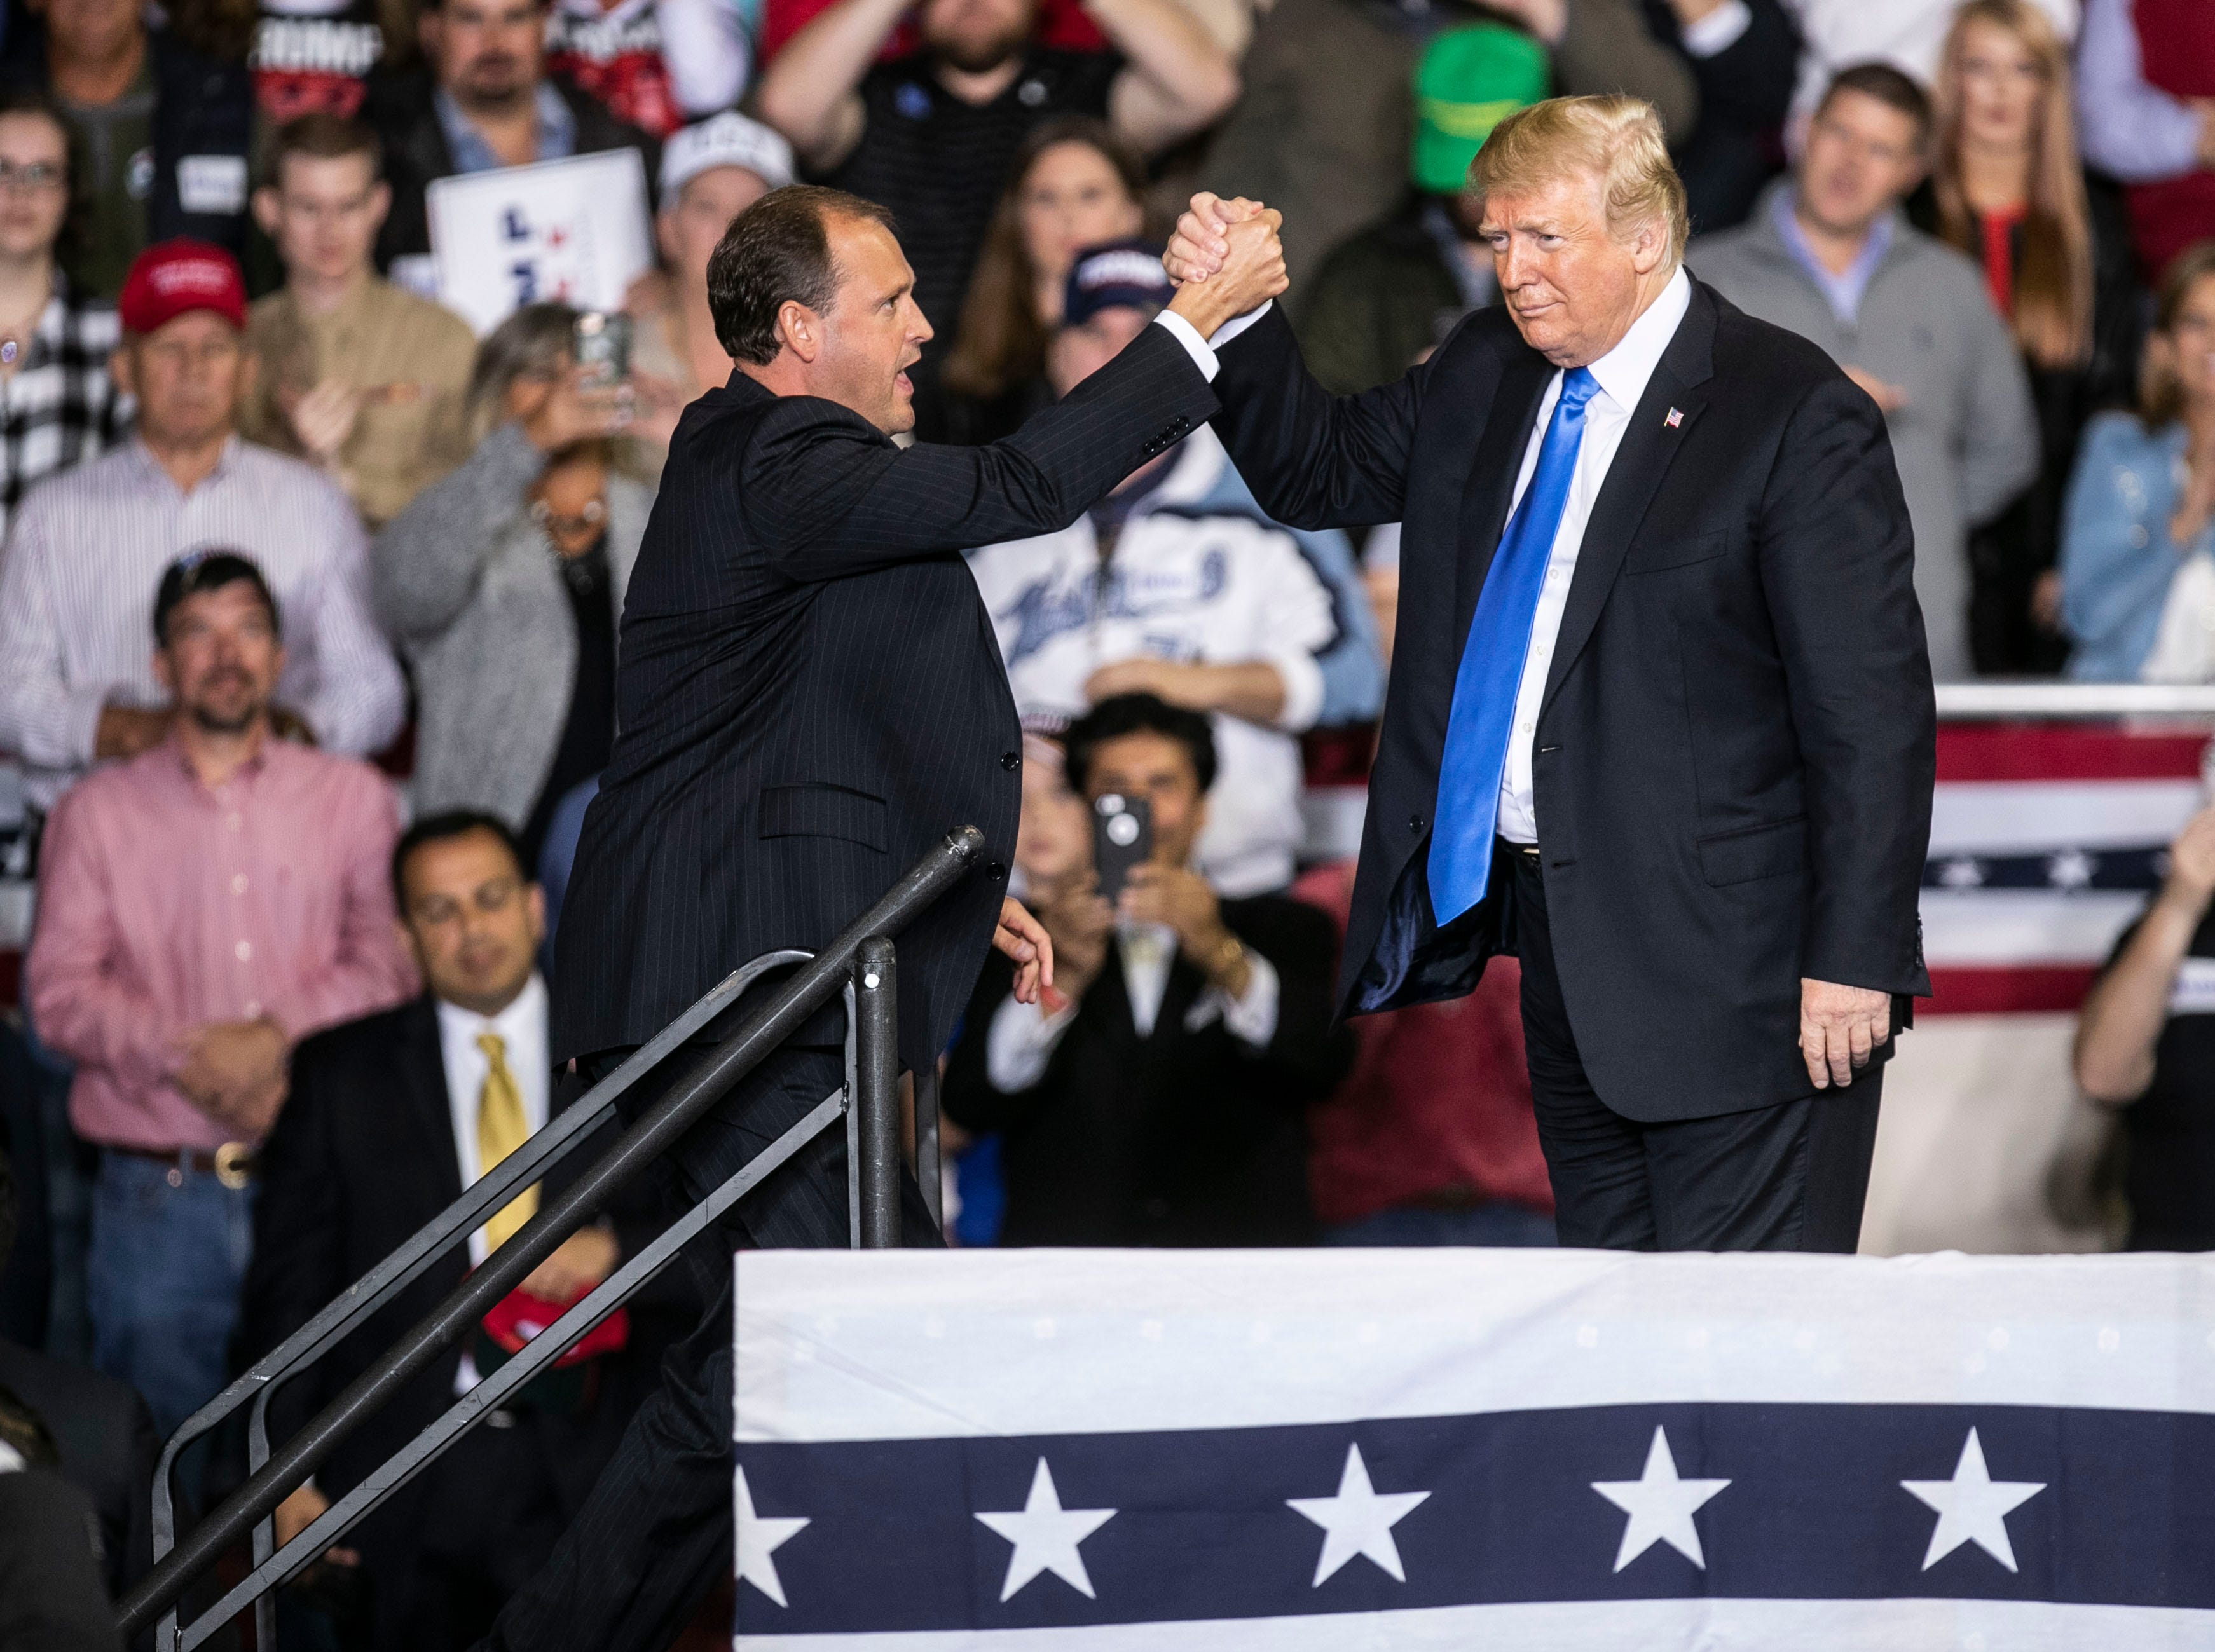 President Donald Trump urged the crowd to vote for Republican Kentucky representative Andy Barr at the conclusion of his speech on the Eastern Kentucky University campus Saturday night.